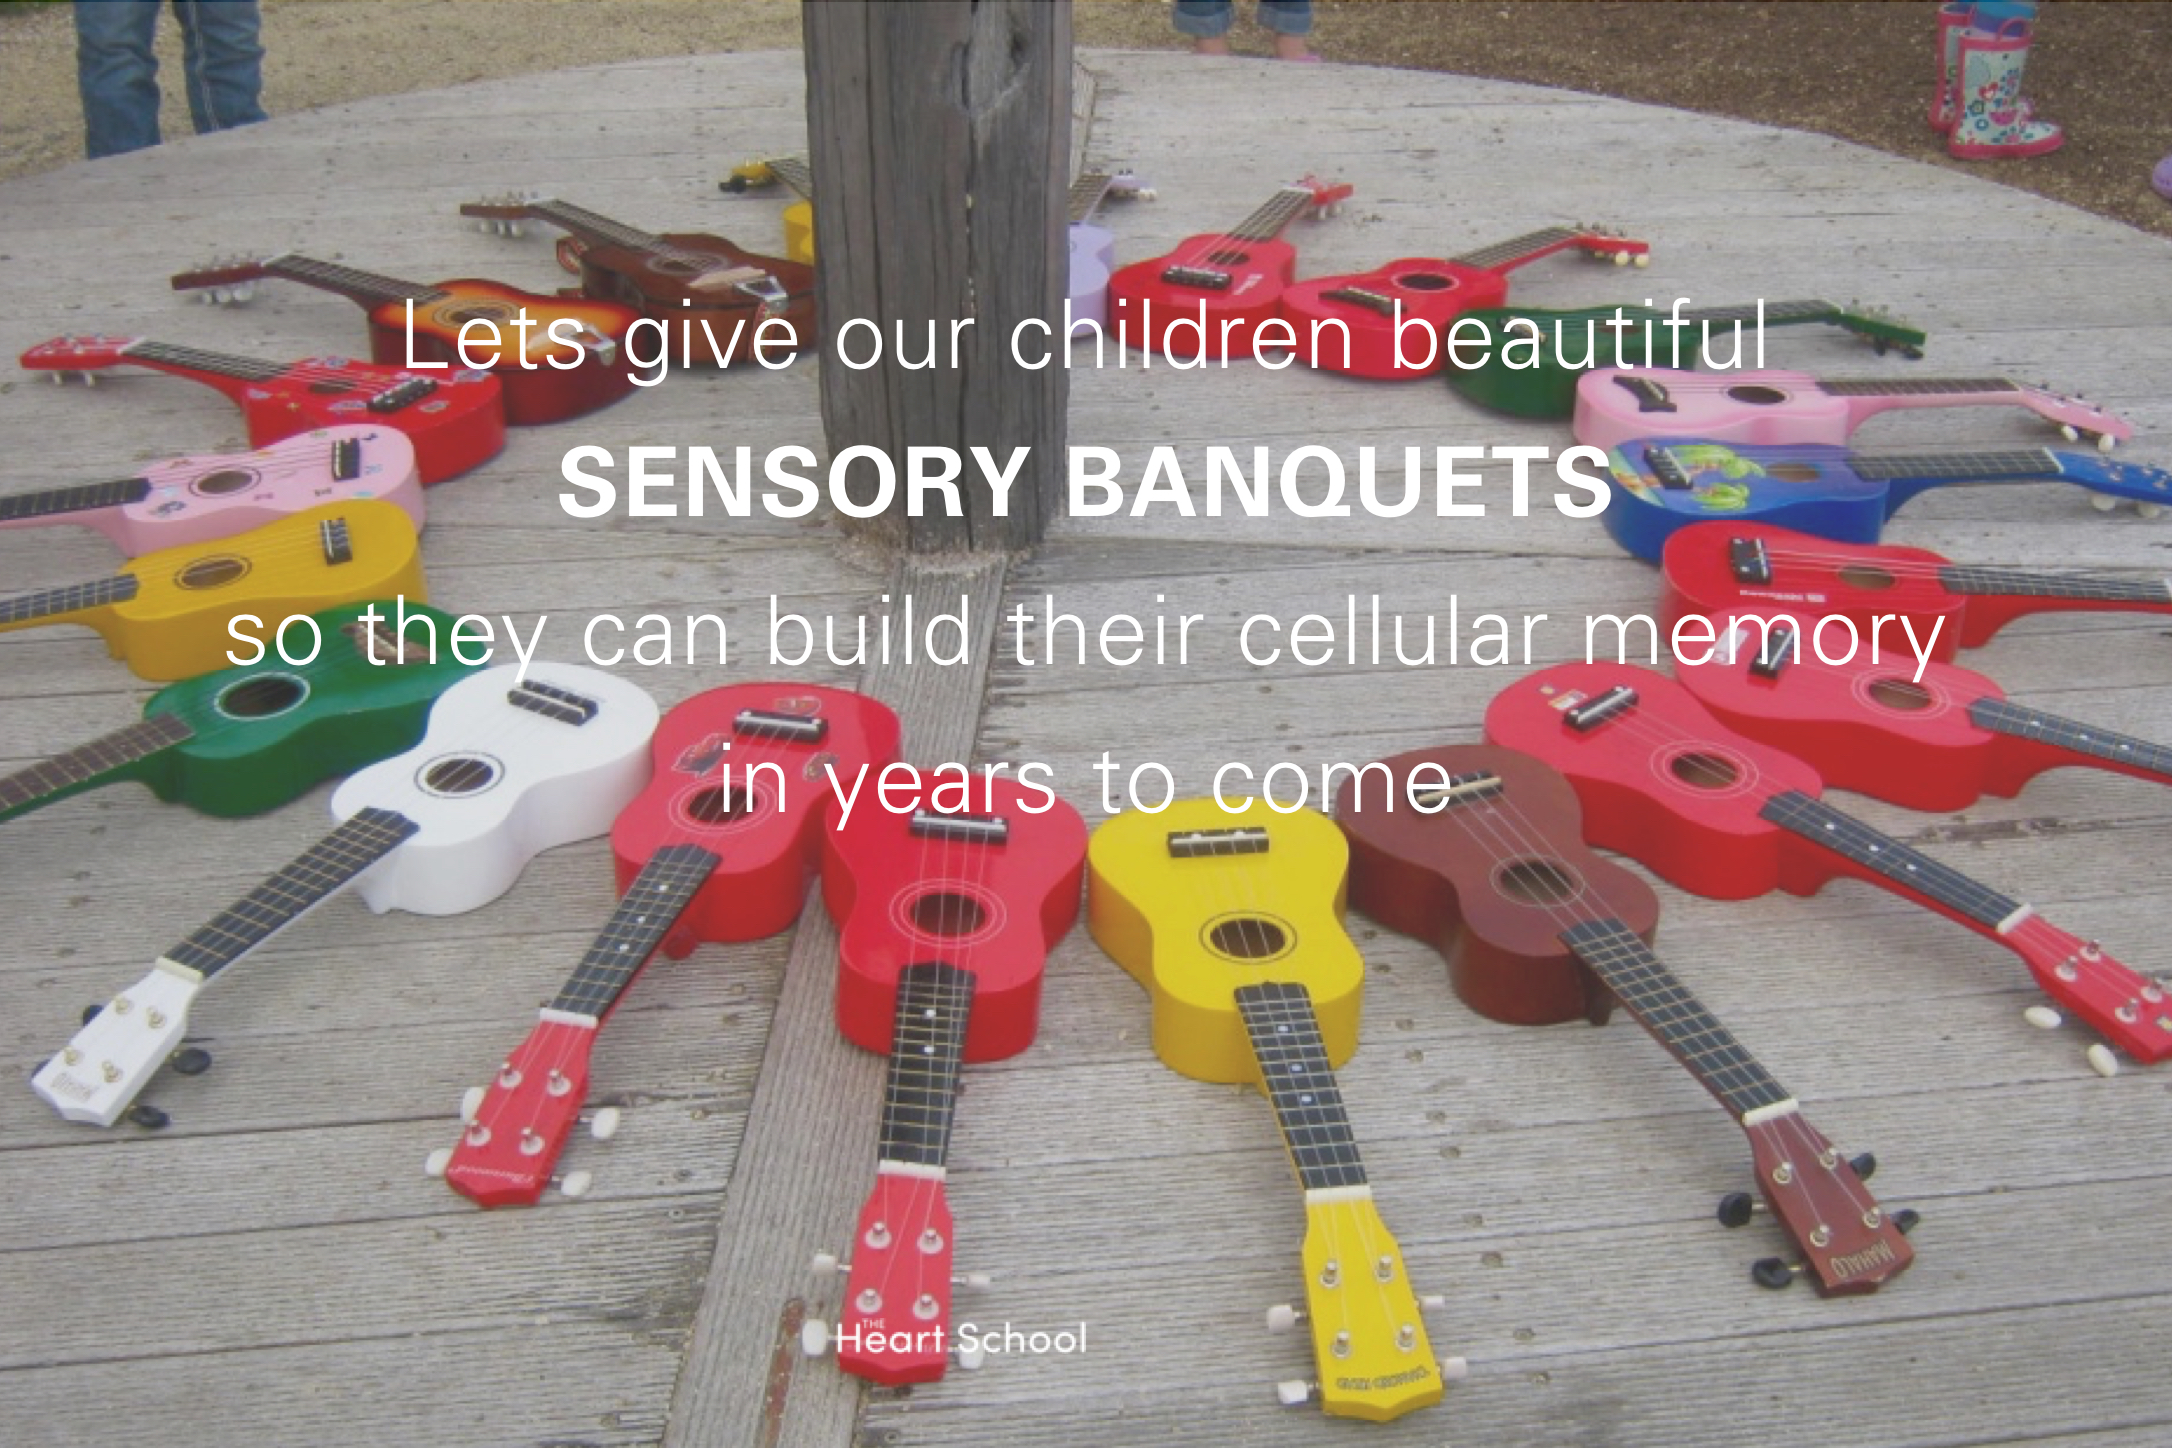 When we consider the formative years of a child's life is all about sensory download, let's be more conscious to provide environments that saturate the senses with beauty as well. Take a sensory stocktake of your place. Ask yourselves a few questions, that really get to the heart of the matter. Is it beautiful? Lets give our children beautiful sensory banquets so they too can have the same cellular memory in years to come.